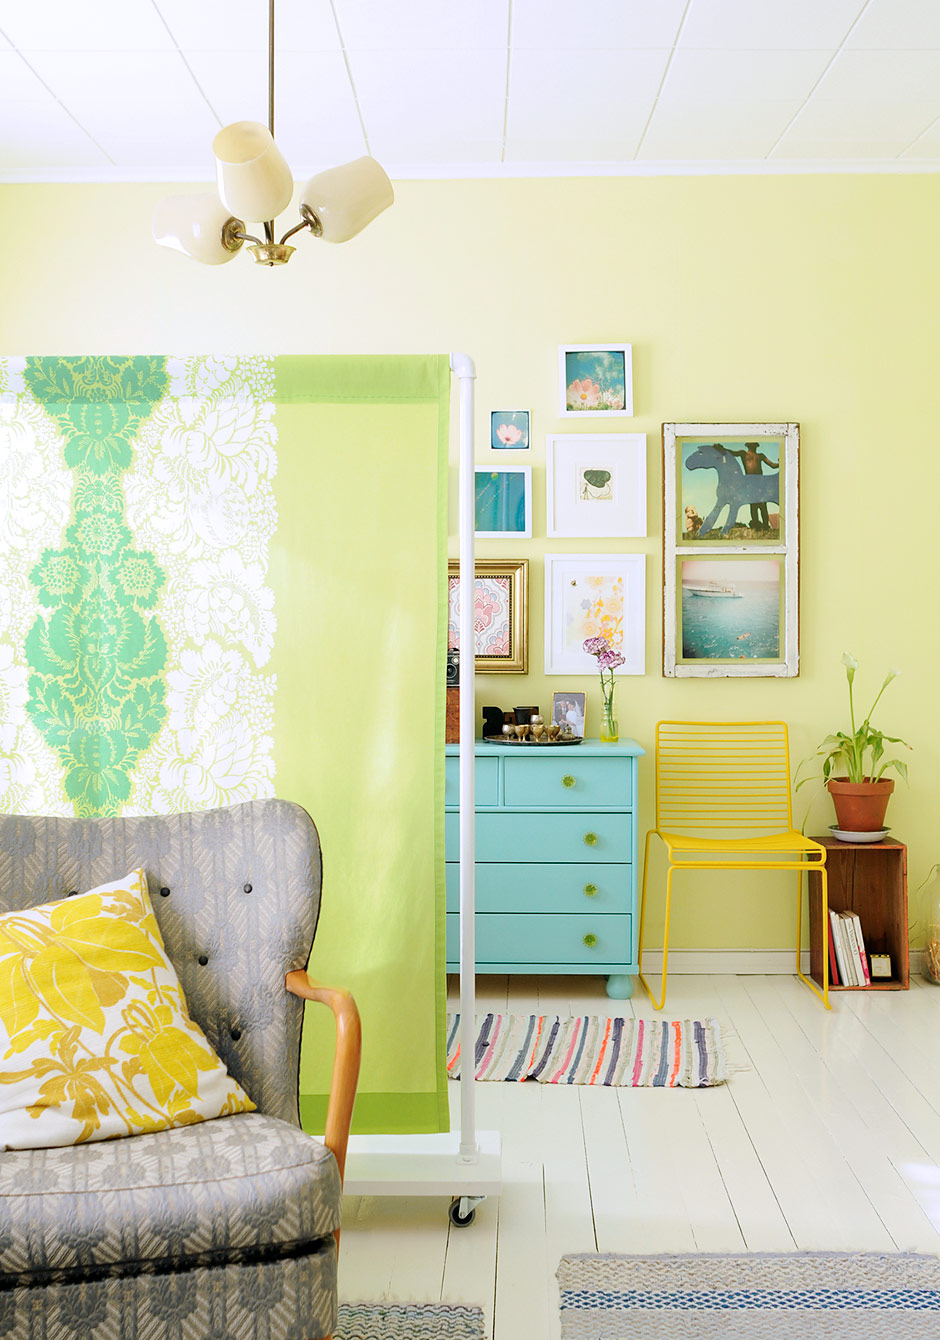 1564566419 614 diy room divider ideas that let you reinvent your home - DIY Room Divider Ideas That Let You Reinvent Your Home